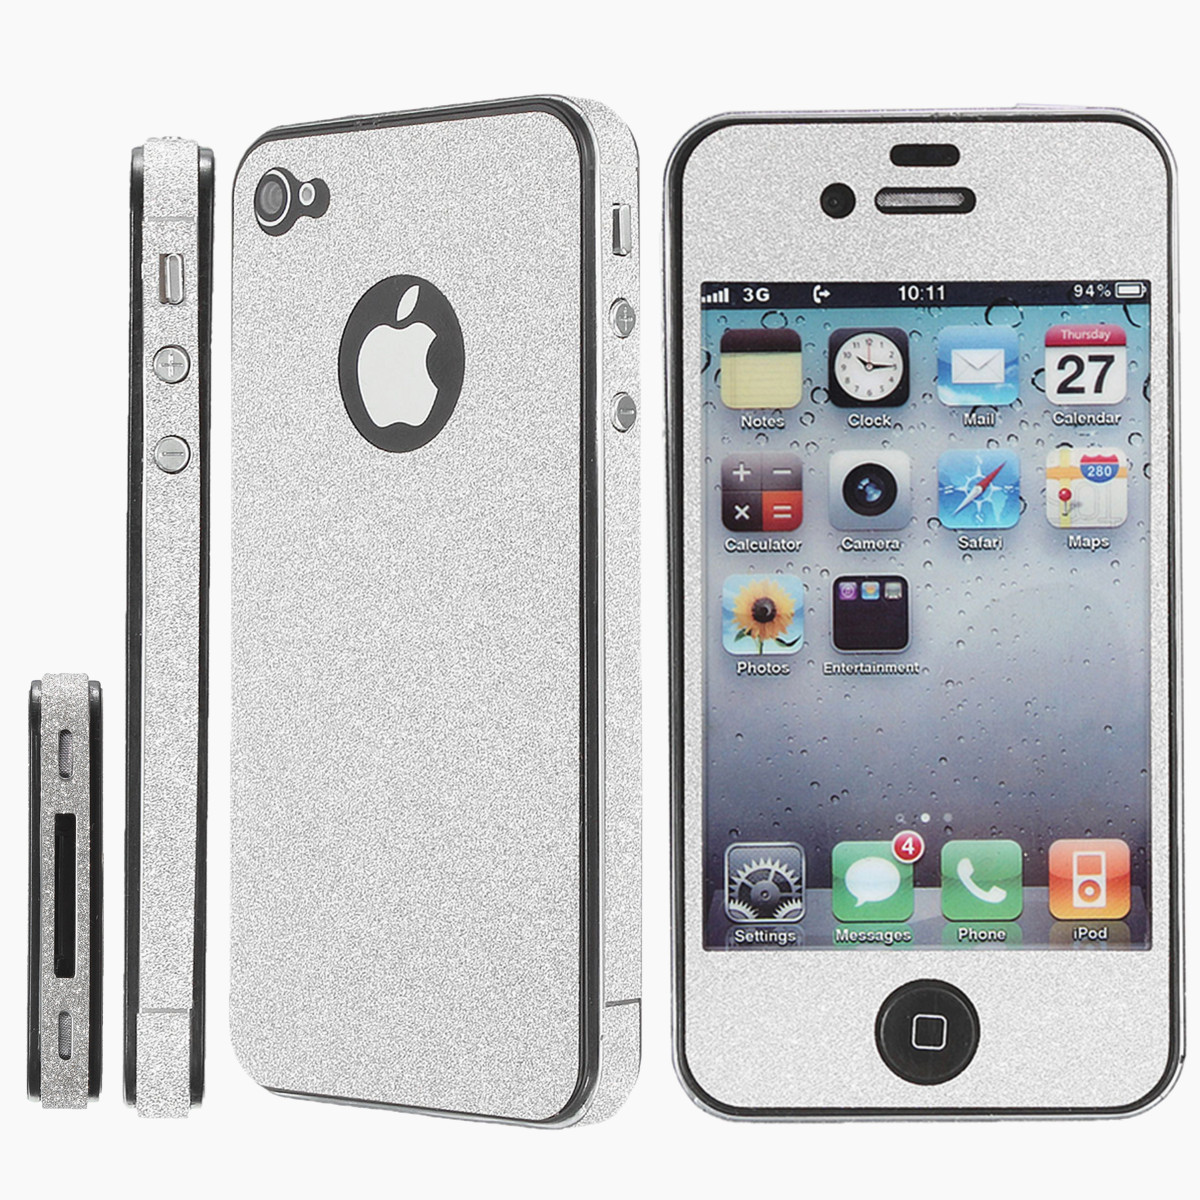 DIYBling Full Body Sticker Skin Screen Protector Cover For Apple iPhone4 4S 5 5S